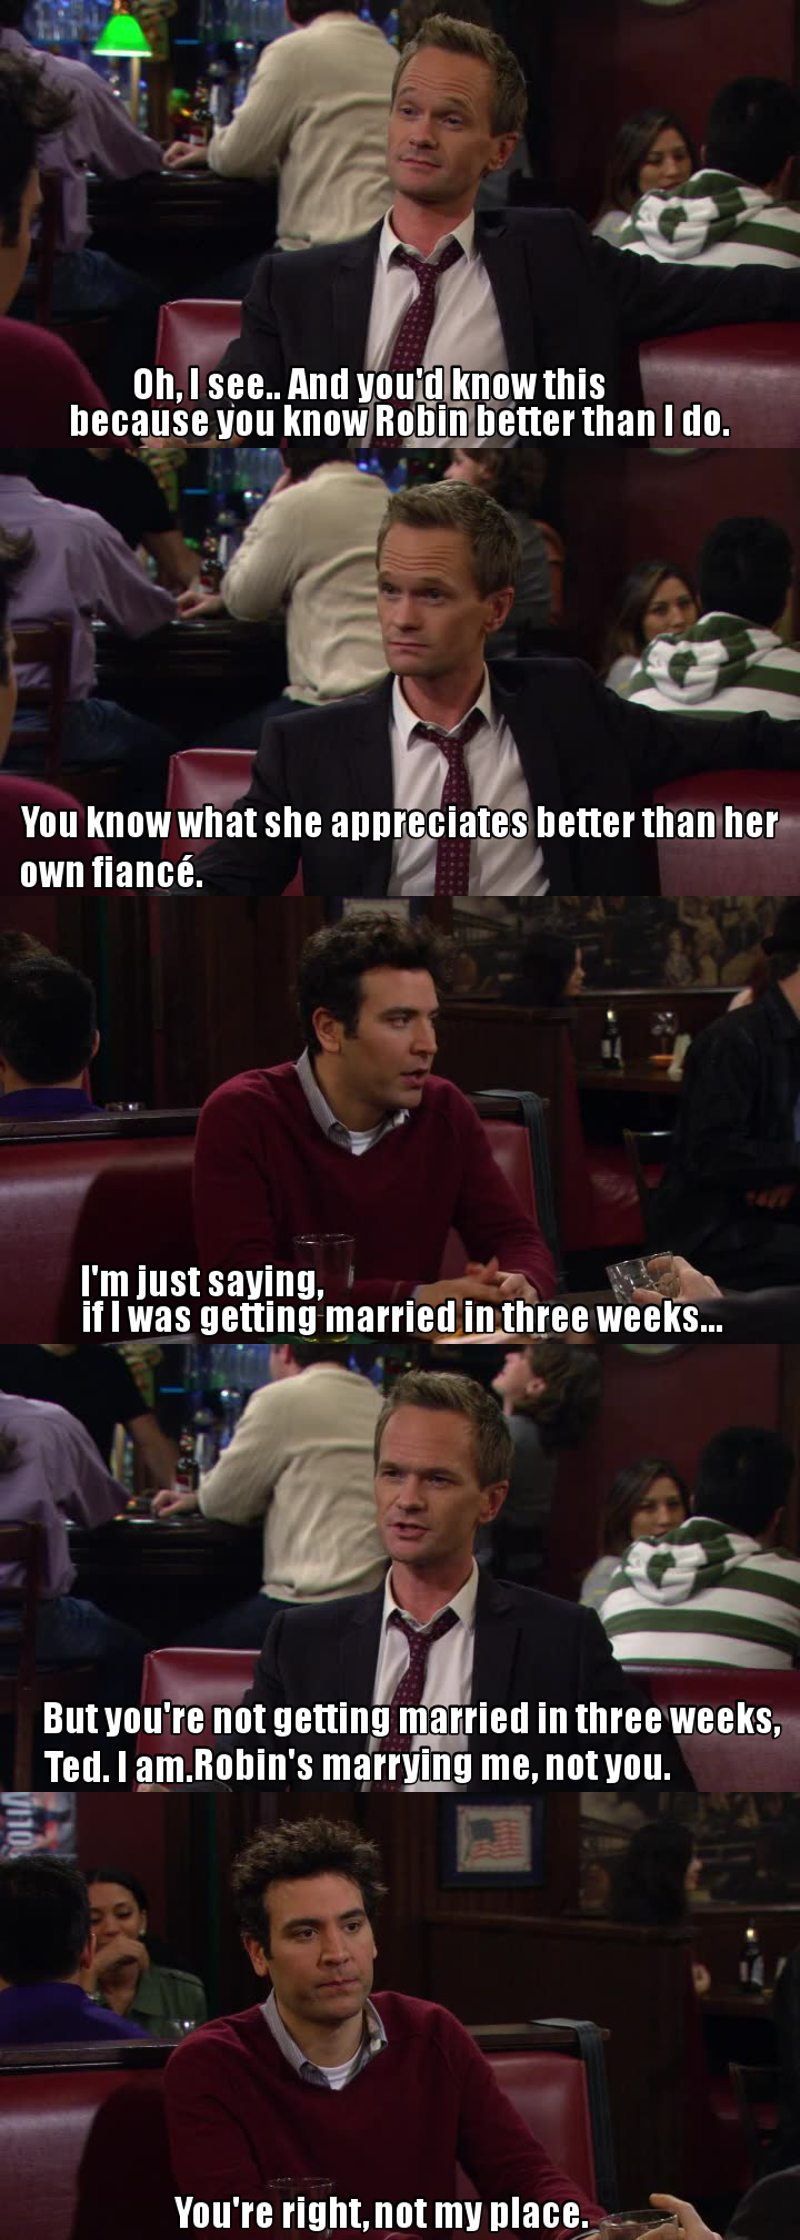 Frasi Di How I Met Your Mother Miglior Frase Impostata In Hd